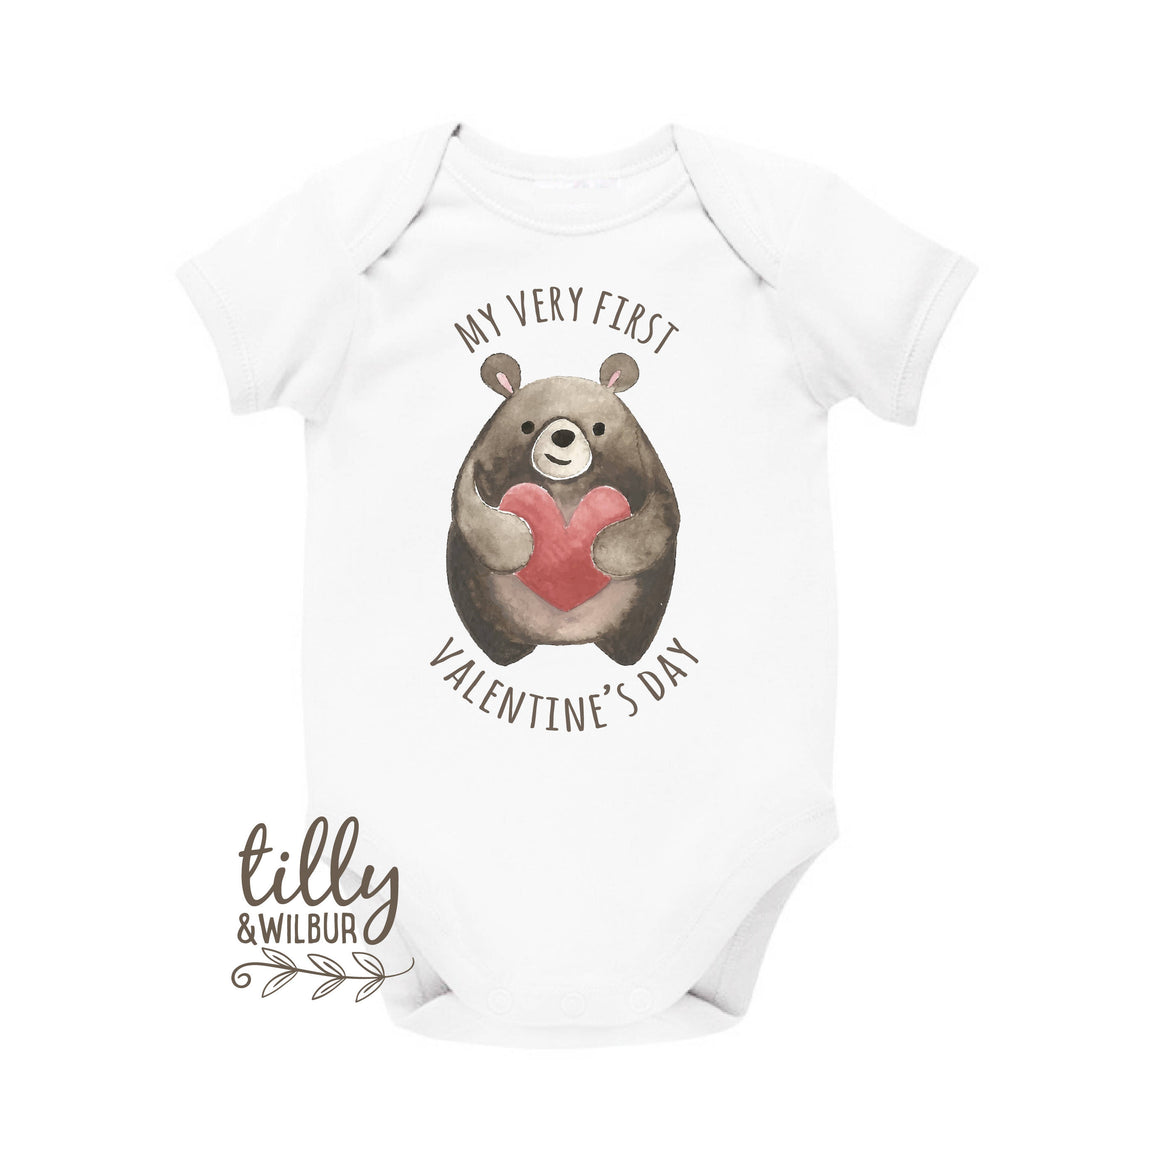 My Very First Valentine's Day Bear With Love Heart, 1st Valentine's Day, Baby's First Valentine's Day, 1st Valentine's Day Newborn Outfit